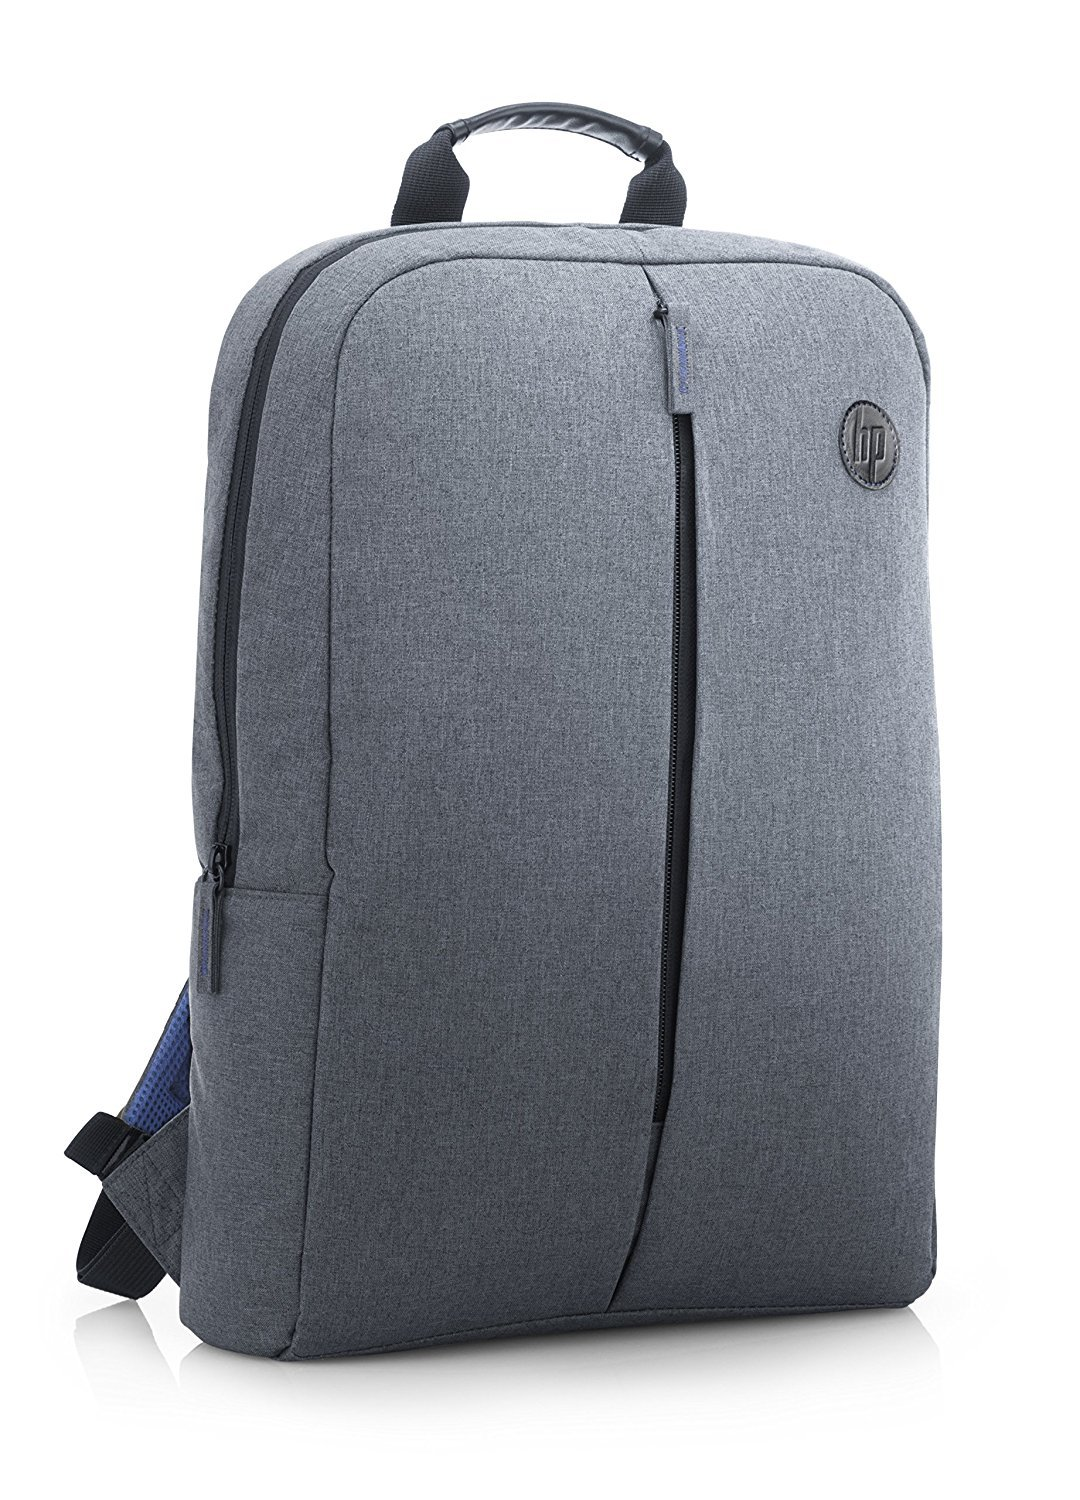 HP Value Backpack hasta 15.6″